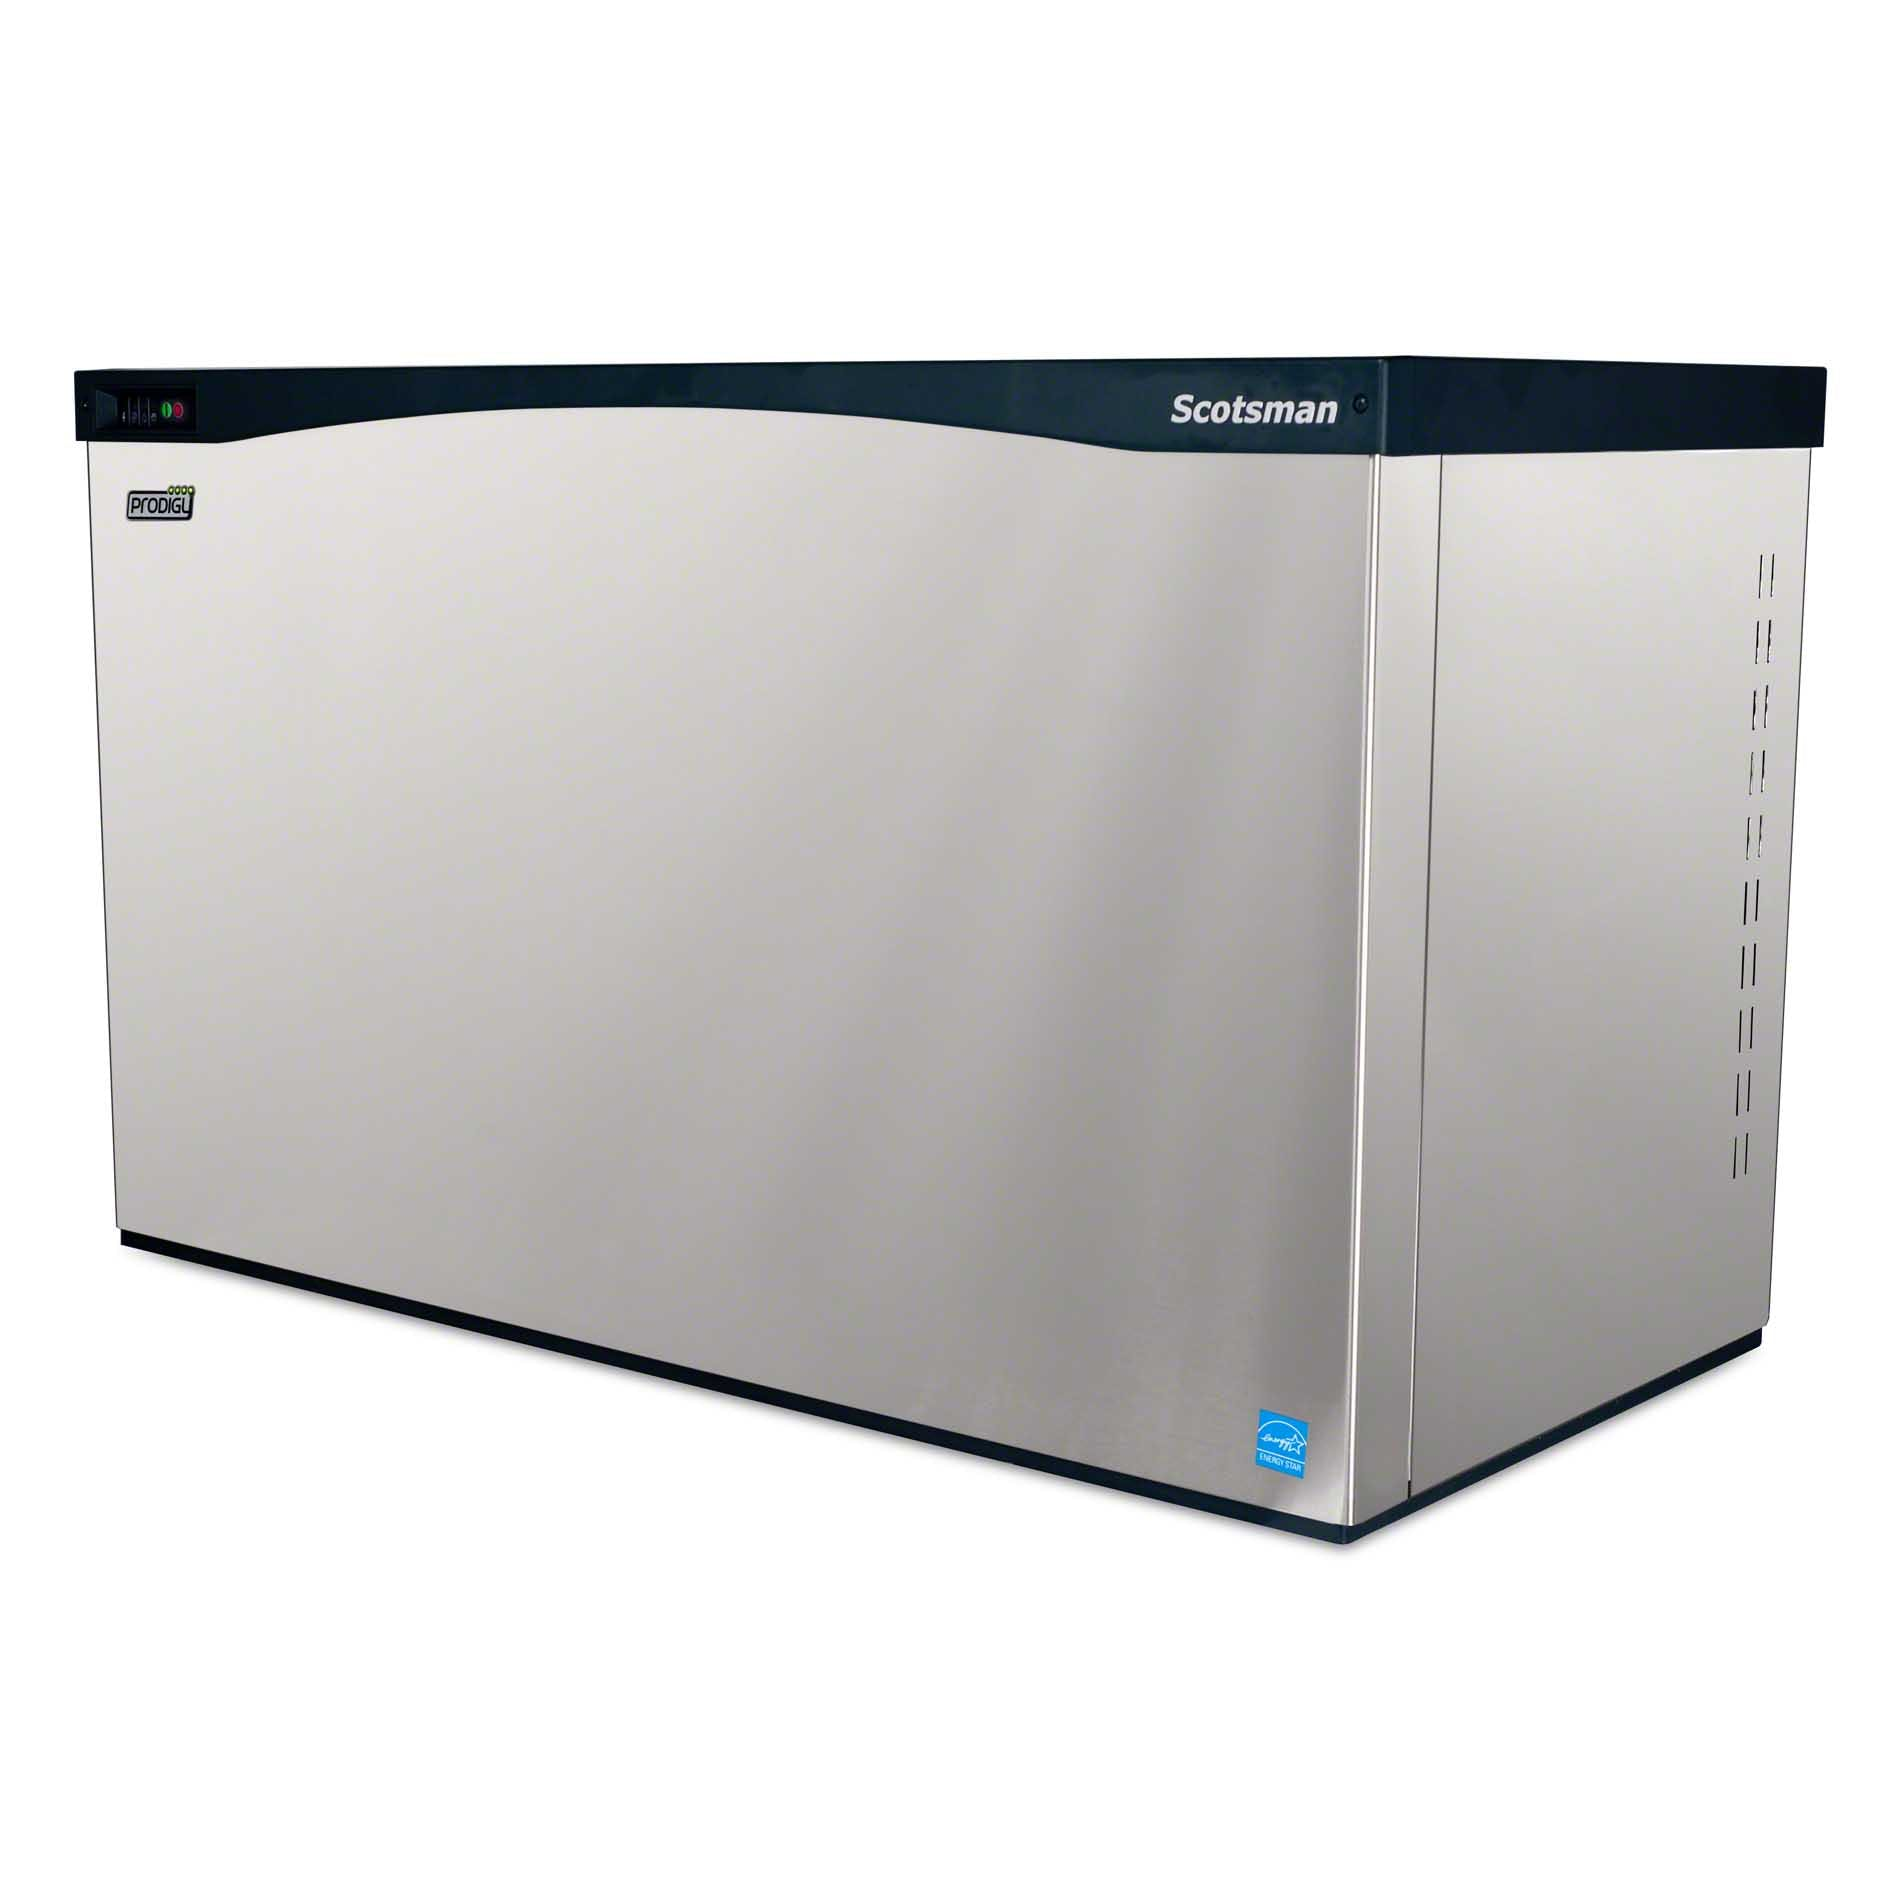 Scotsman - C1848SR-32A 1828 lb Half Size Cube Ice Machine - Prodigy Series - sold by Food Service Warehouse